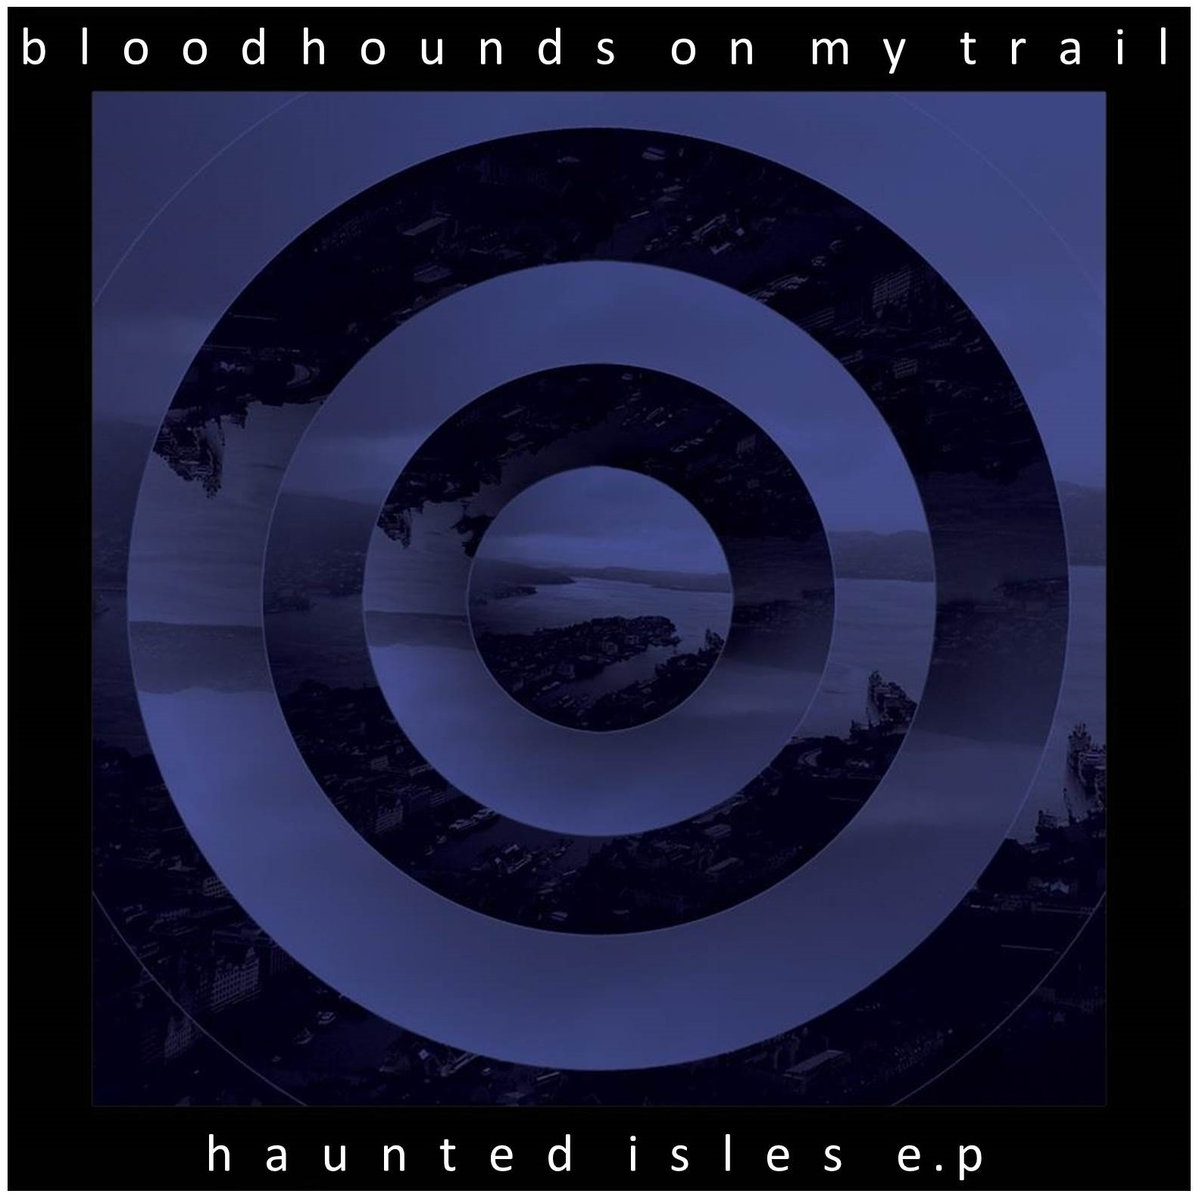 Bloodhounds - Haunted Isles EP 1 - fanzine